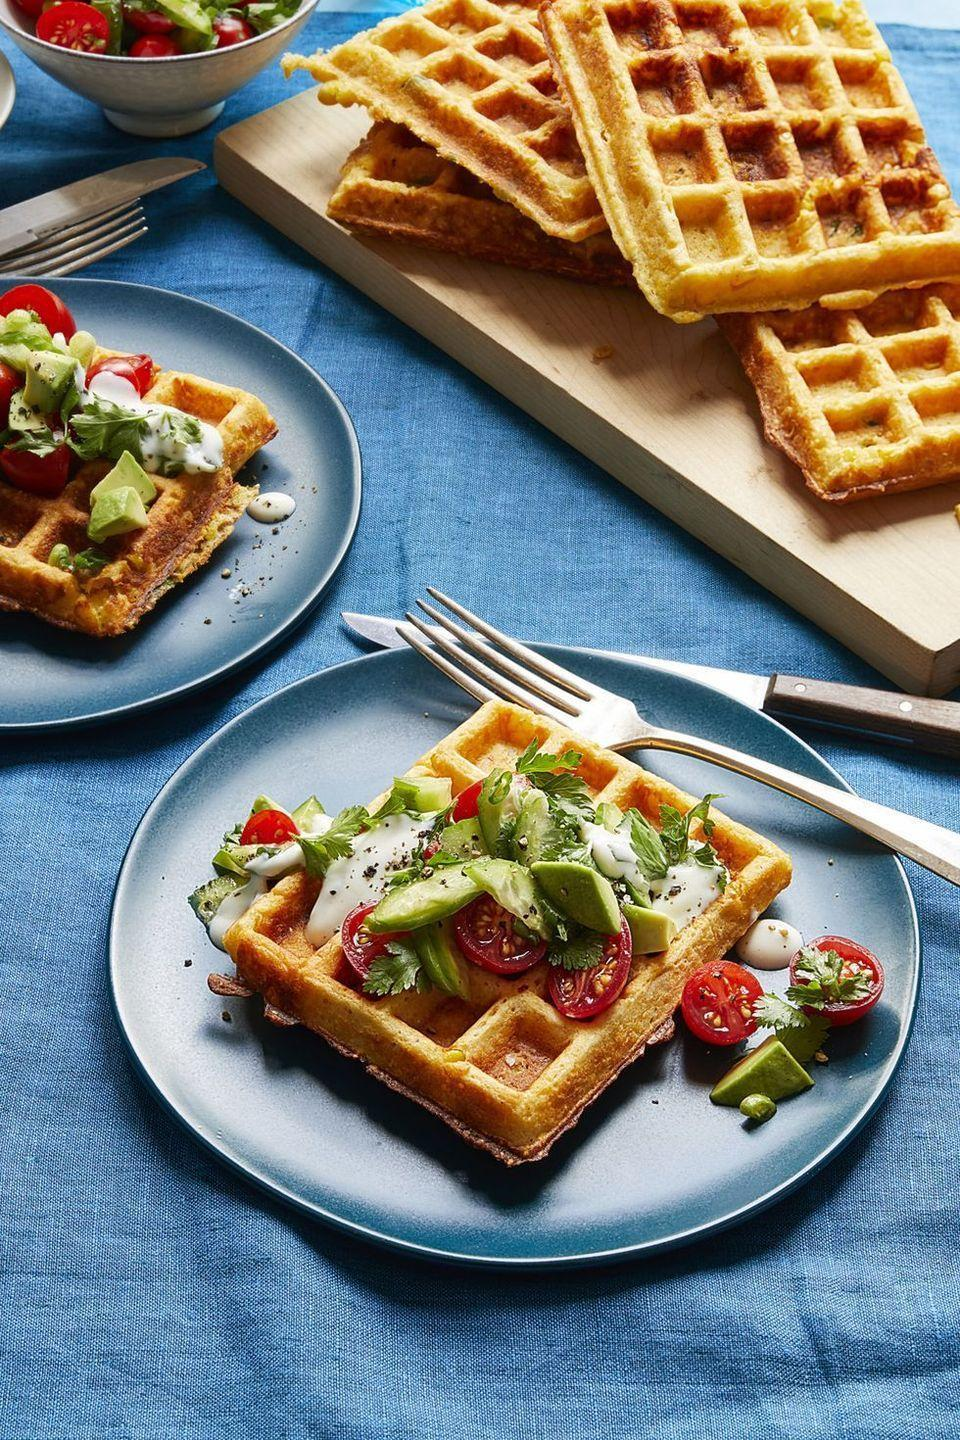 """<p>The sweetness from the waffles, the savory from the herb sald — it's all just too good. </p><p><strong><em><a href=""""https://www.womansday.com/food-recipes/food-drinks/a16759286/savory-corn-waffles-with-tomato-herb-salad-recipe/"""" rel=""""nofollow noopener"""" target=""""_blank"""" data-ylk=""""slk:Get the Savory Corn Waffles with Tomato Herb Salad recipe."""" class=""""link rapid-noclick-resp"""">Get the Savory Corn Waffles with Tomato Herb Salad recipe. </a> </em></strong></p>"""